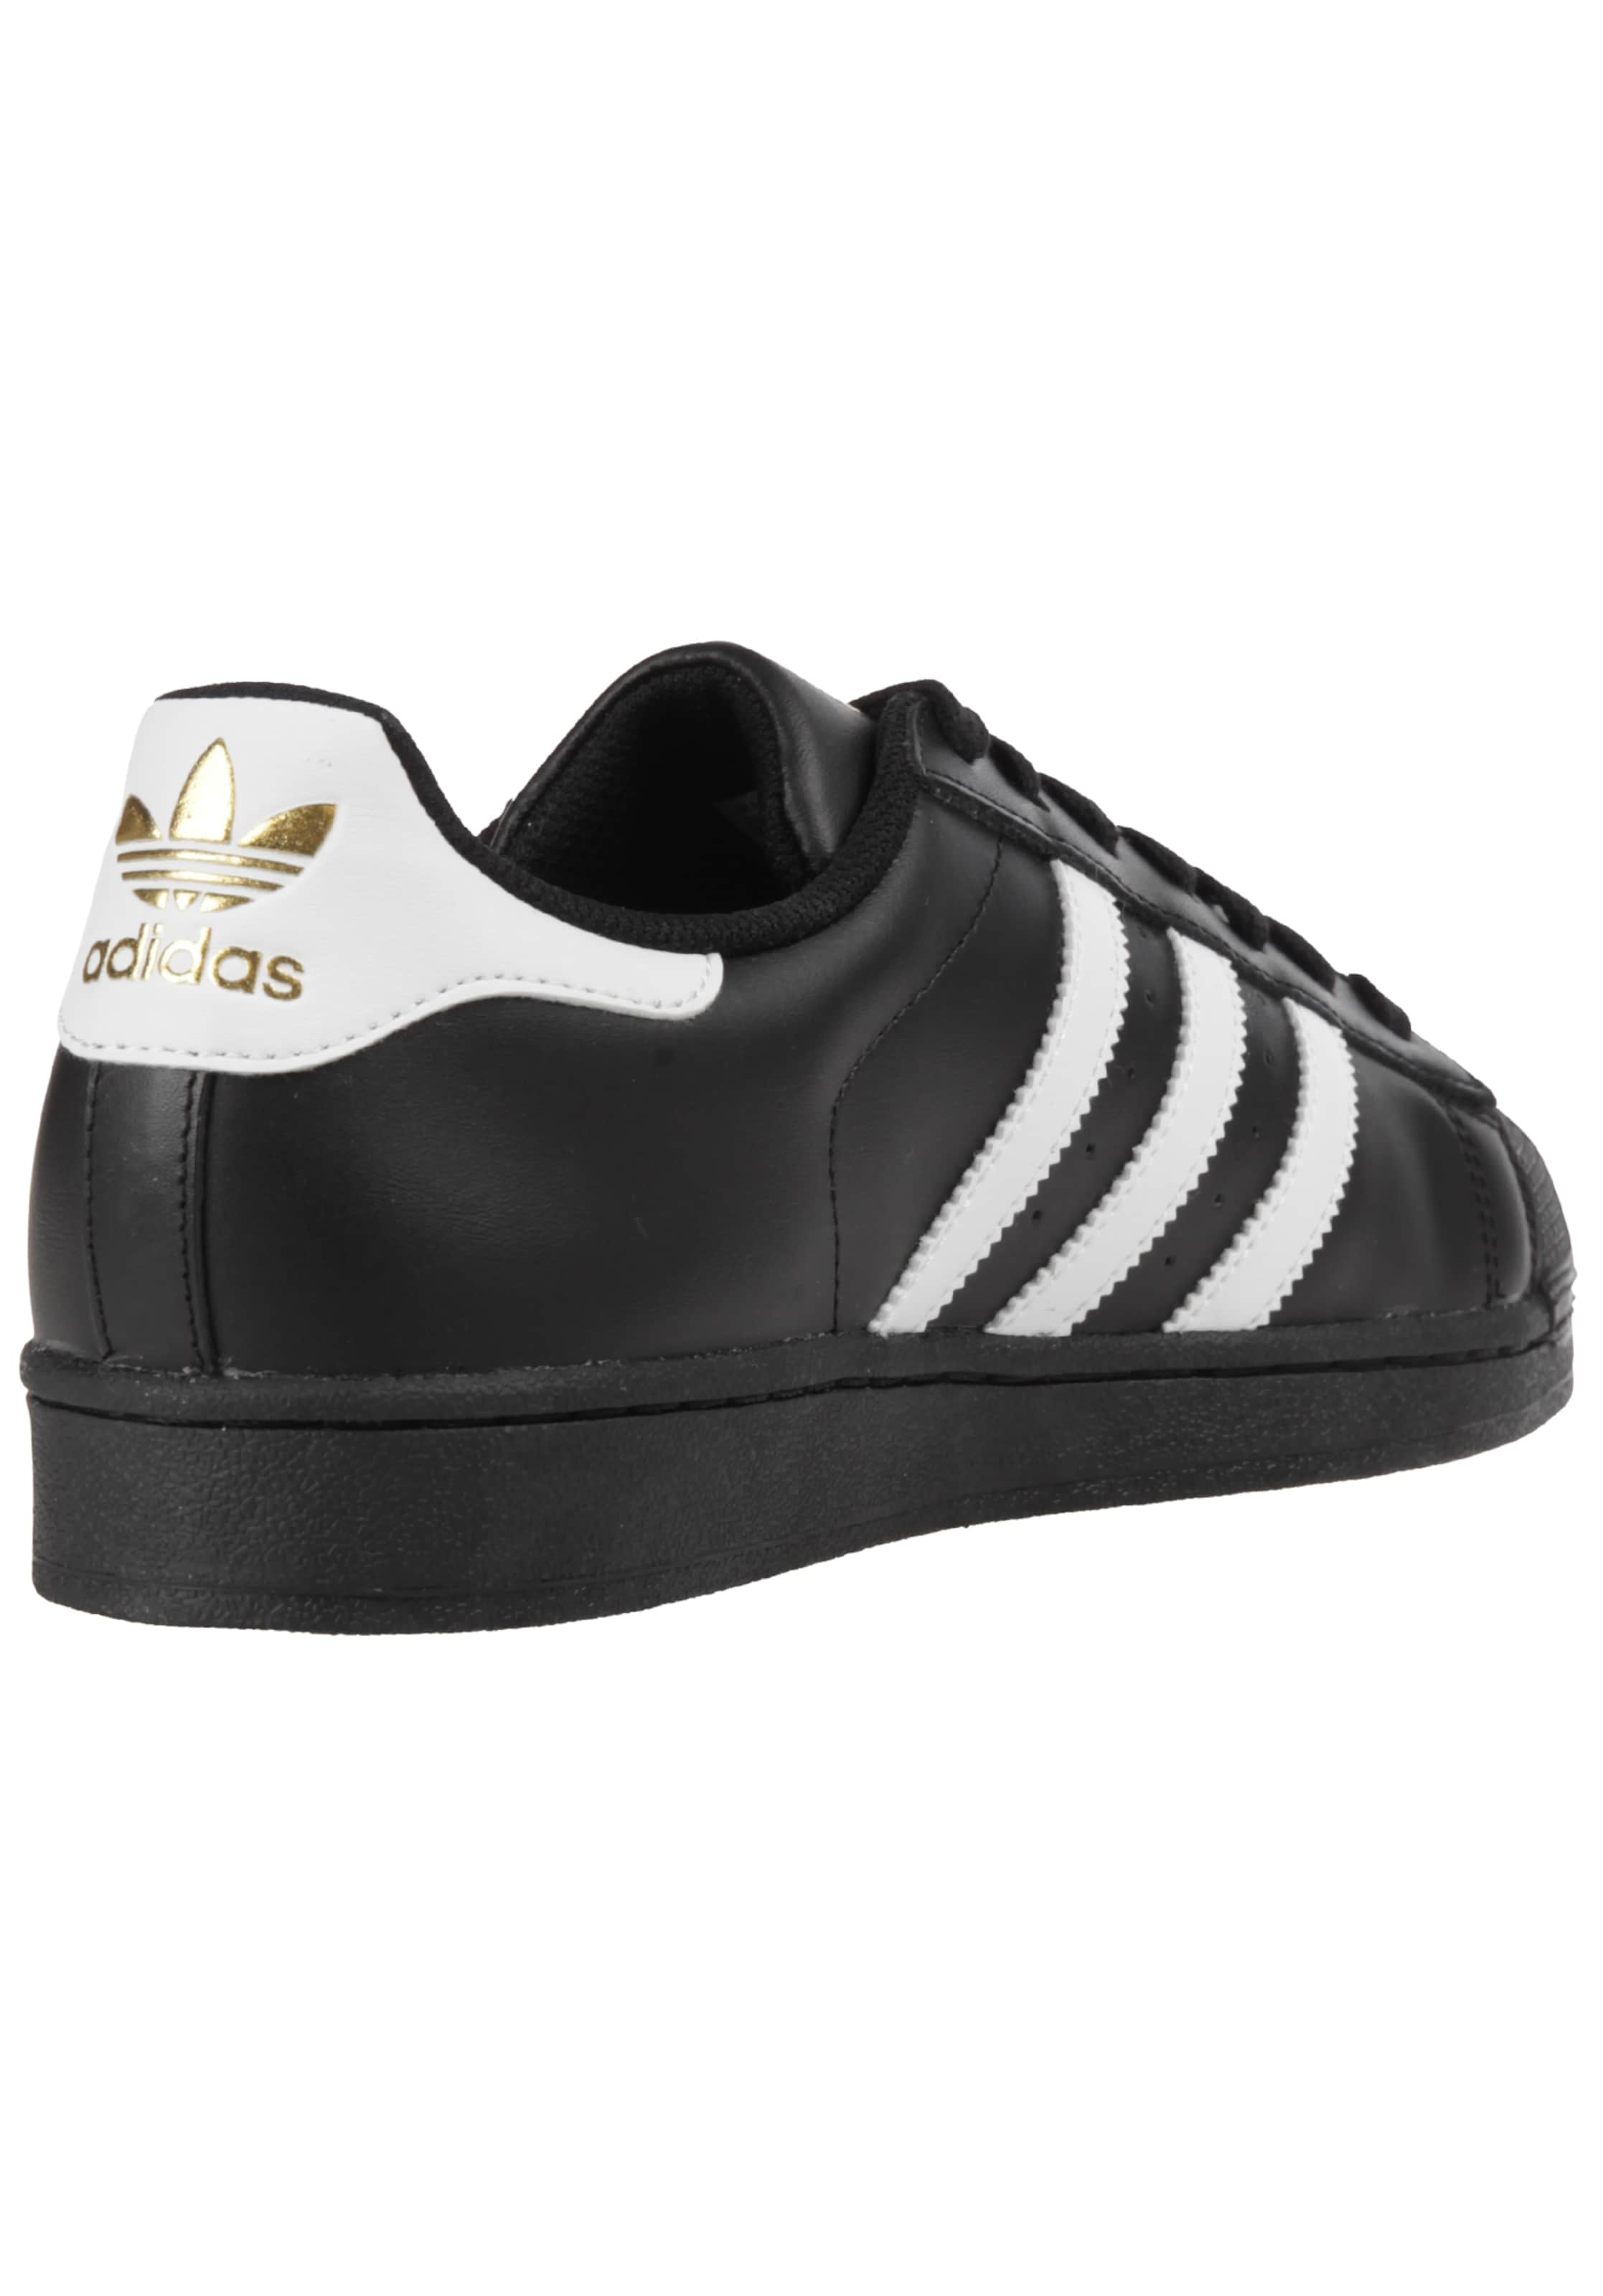 Adidas Originals SchwarzWeiß In Sneaker 'superstar' UzSVpM